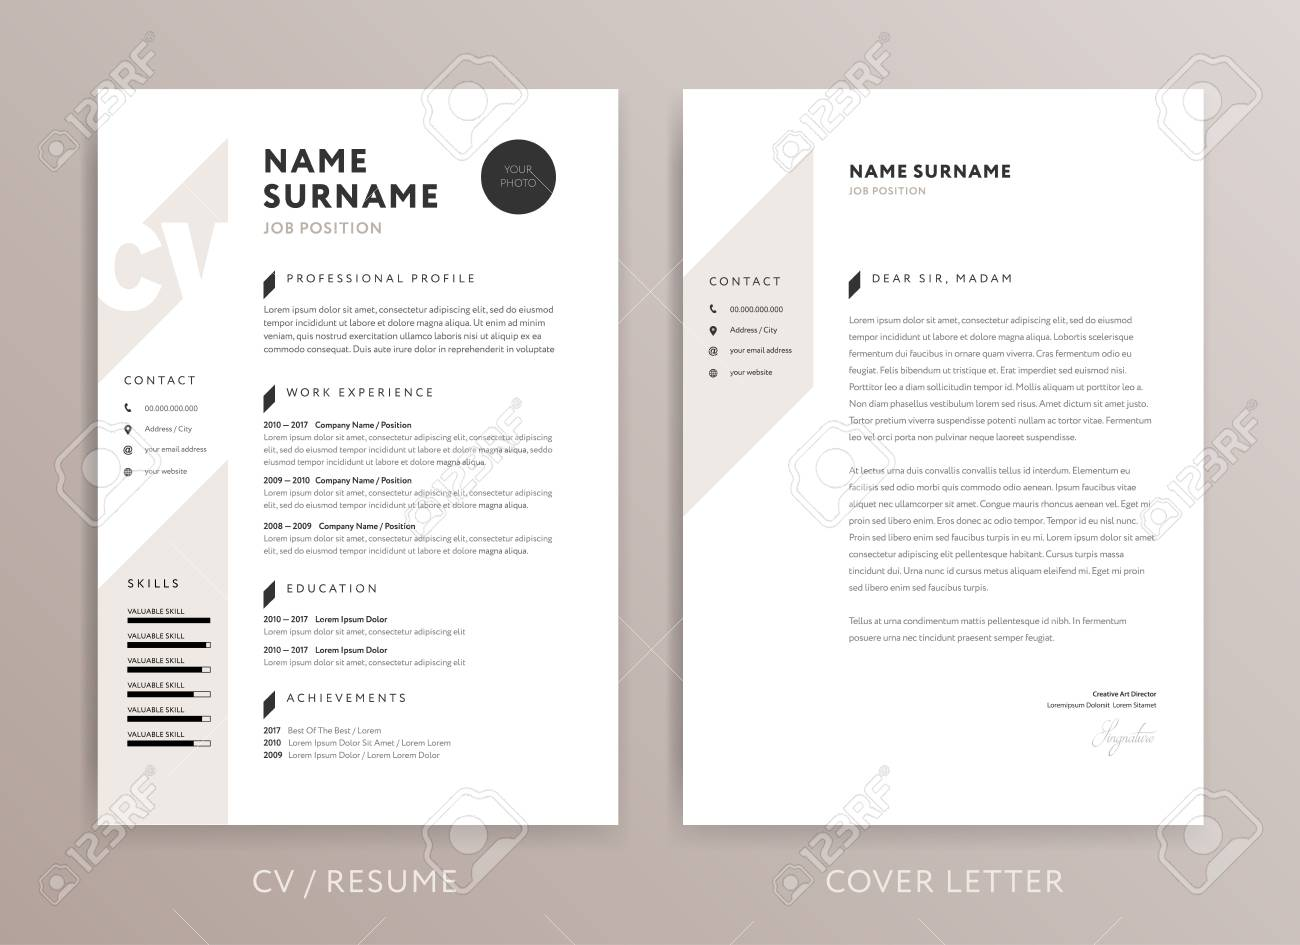 Stylish Cv Design Curriculum Vitae Cover Letter Template